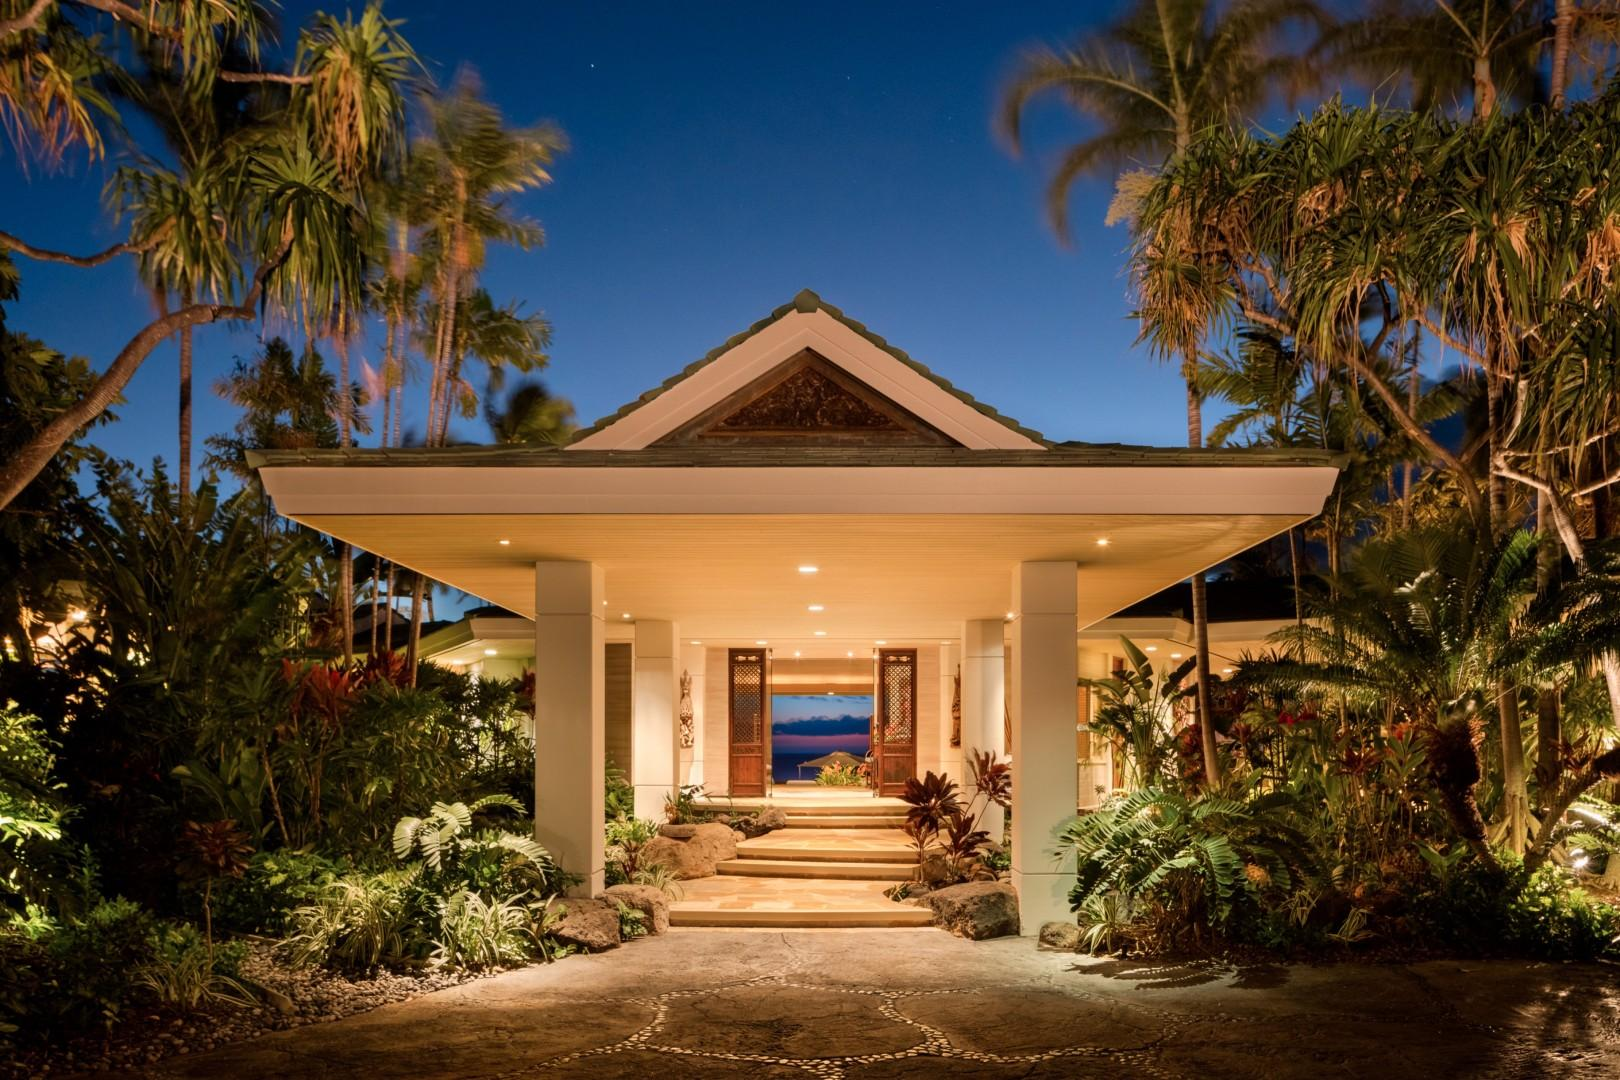 Grand entryway with tropical landscaping lit up at twilight.